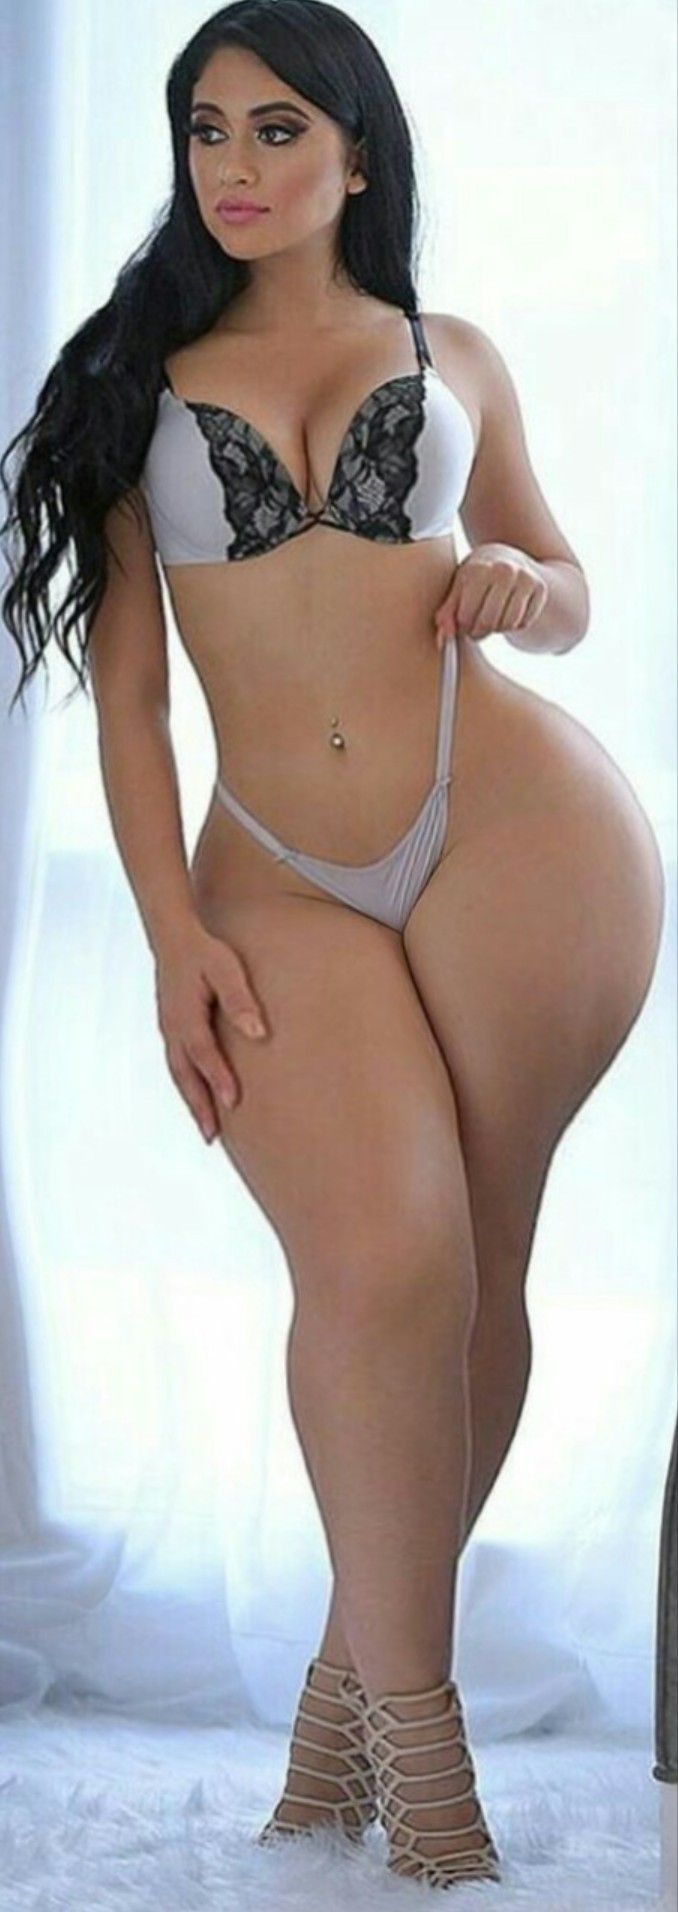 Want eat chubby latina brunet porn and